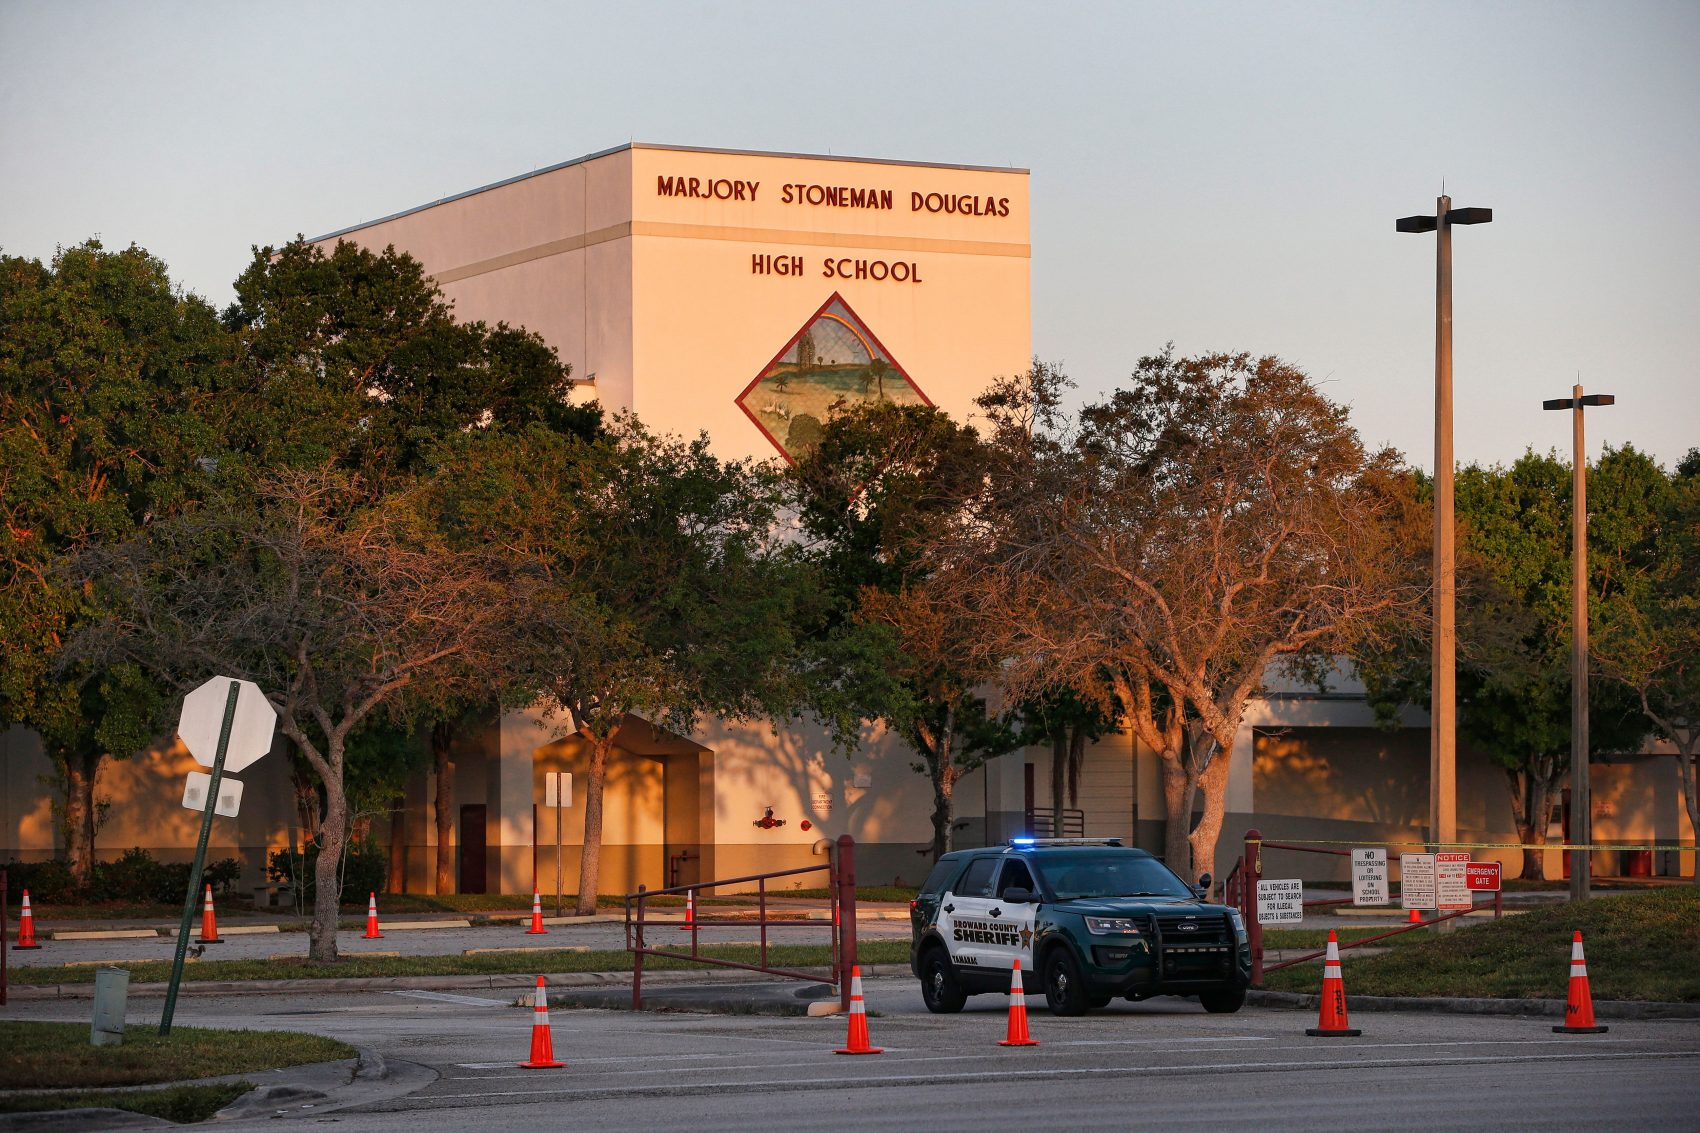 A general view of Marjory Stoneman Douglas High School as staff and teachers prepare for the return of students in Parkland, Florida on Feb. 27, 2018. (Rhona Wise/AFP/Getty Images)